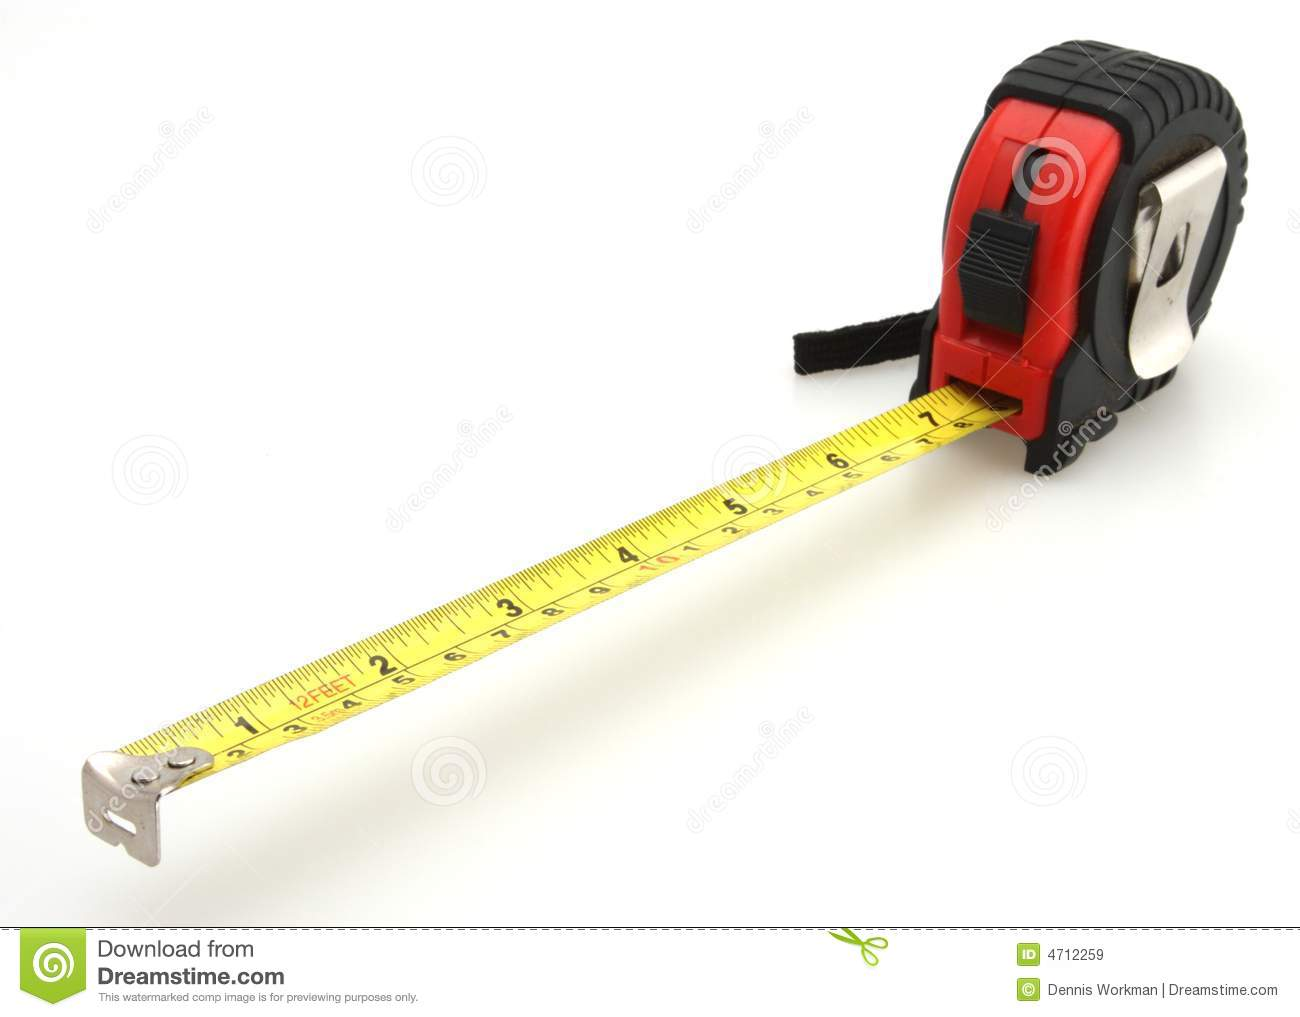 how to read a tape measure quiz